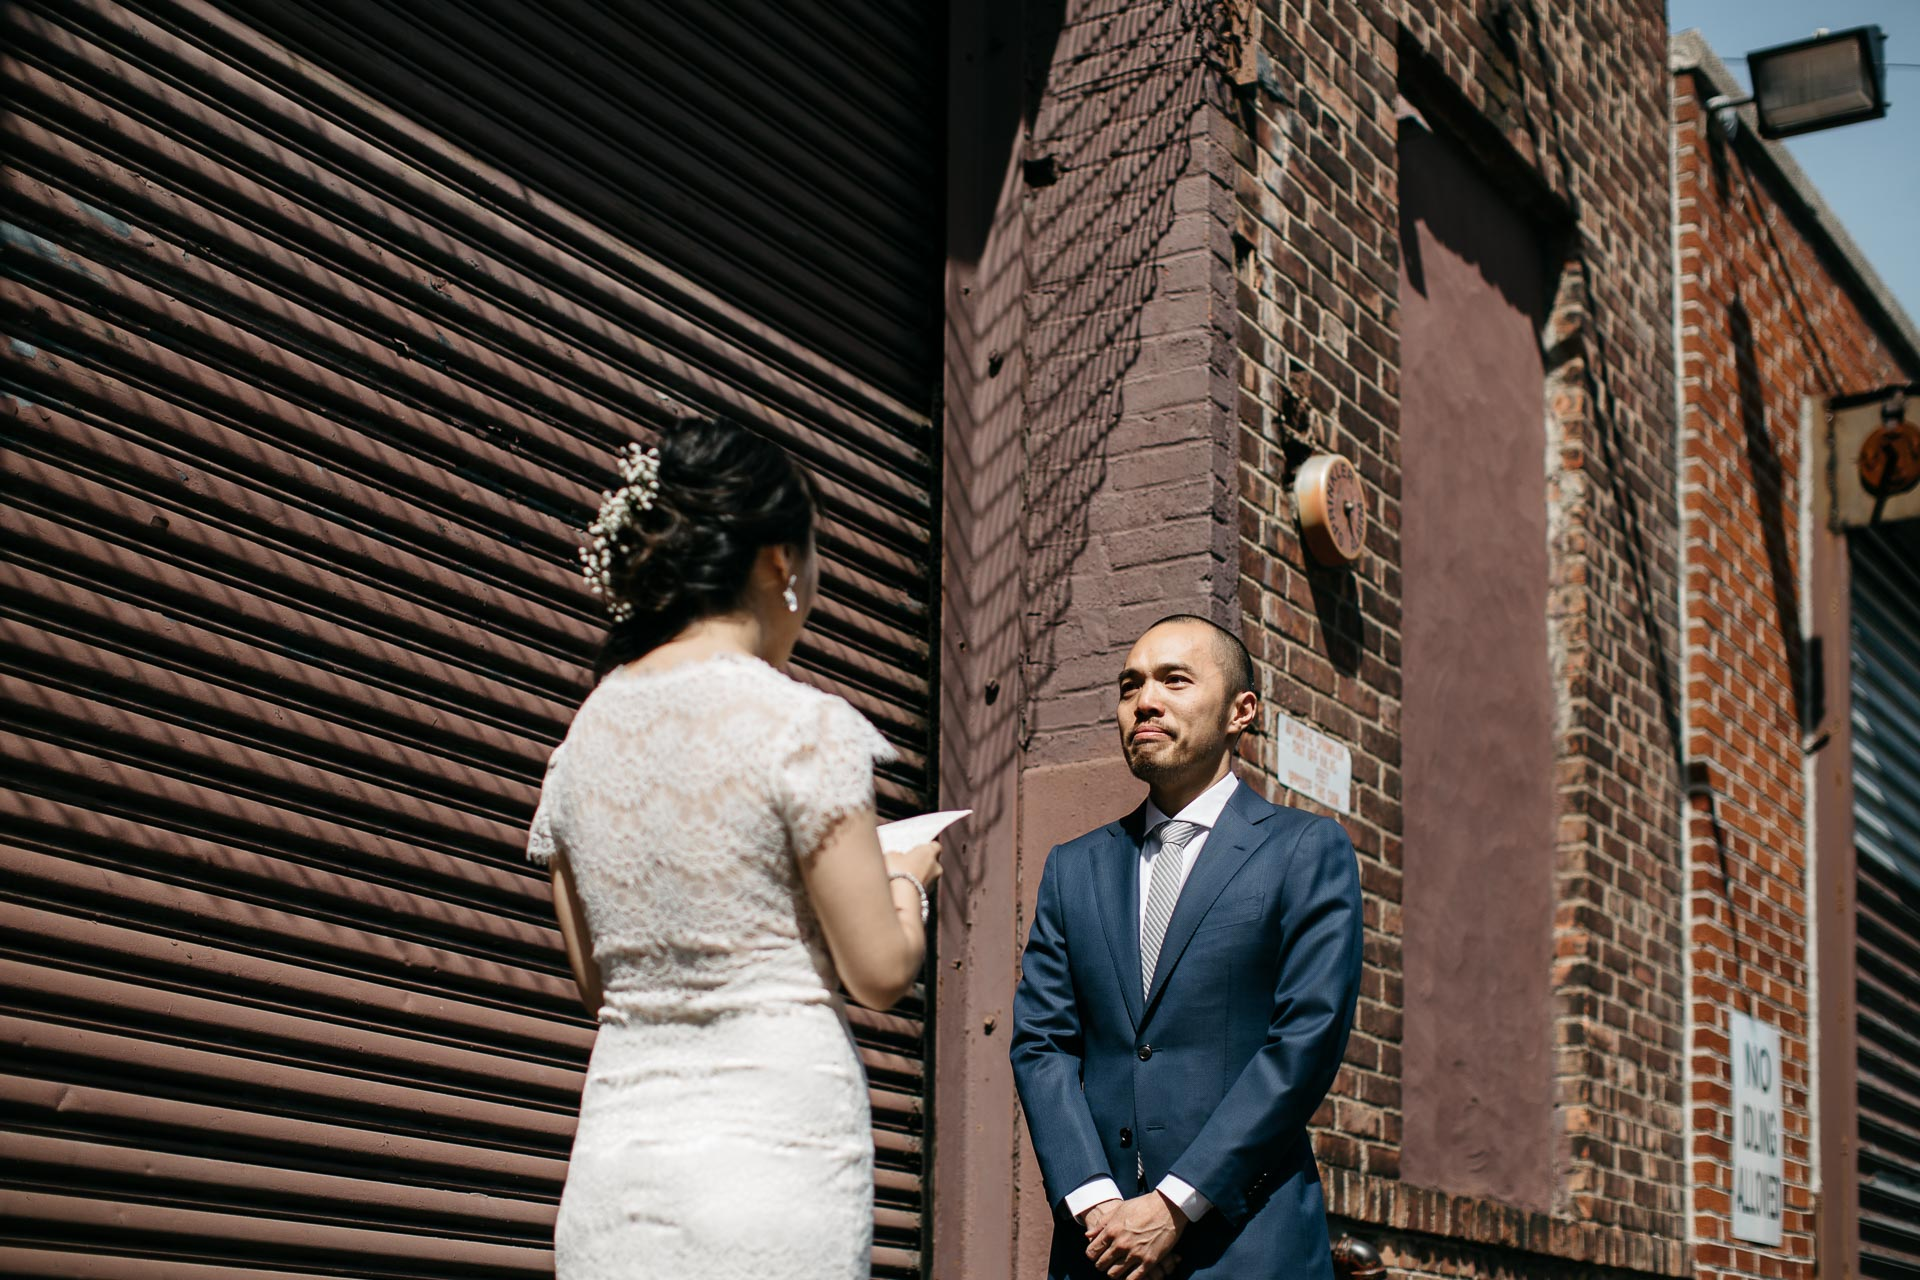 Reina & Keith Bushwick Wedding in Brooklyn by Jean-Laurent Gaudy Photography